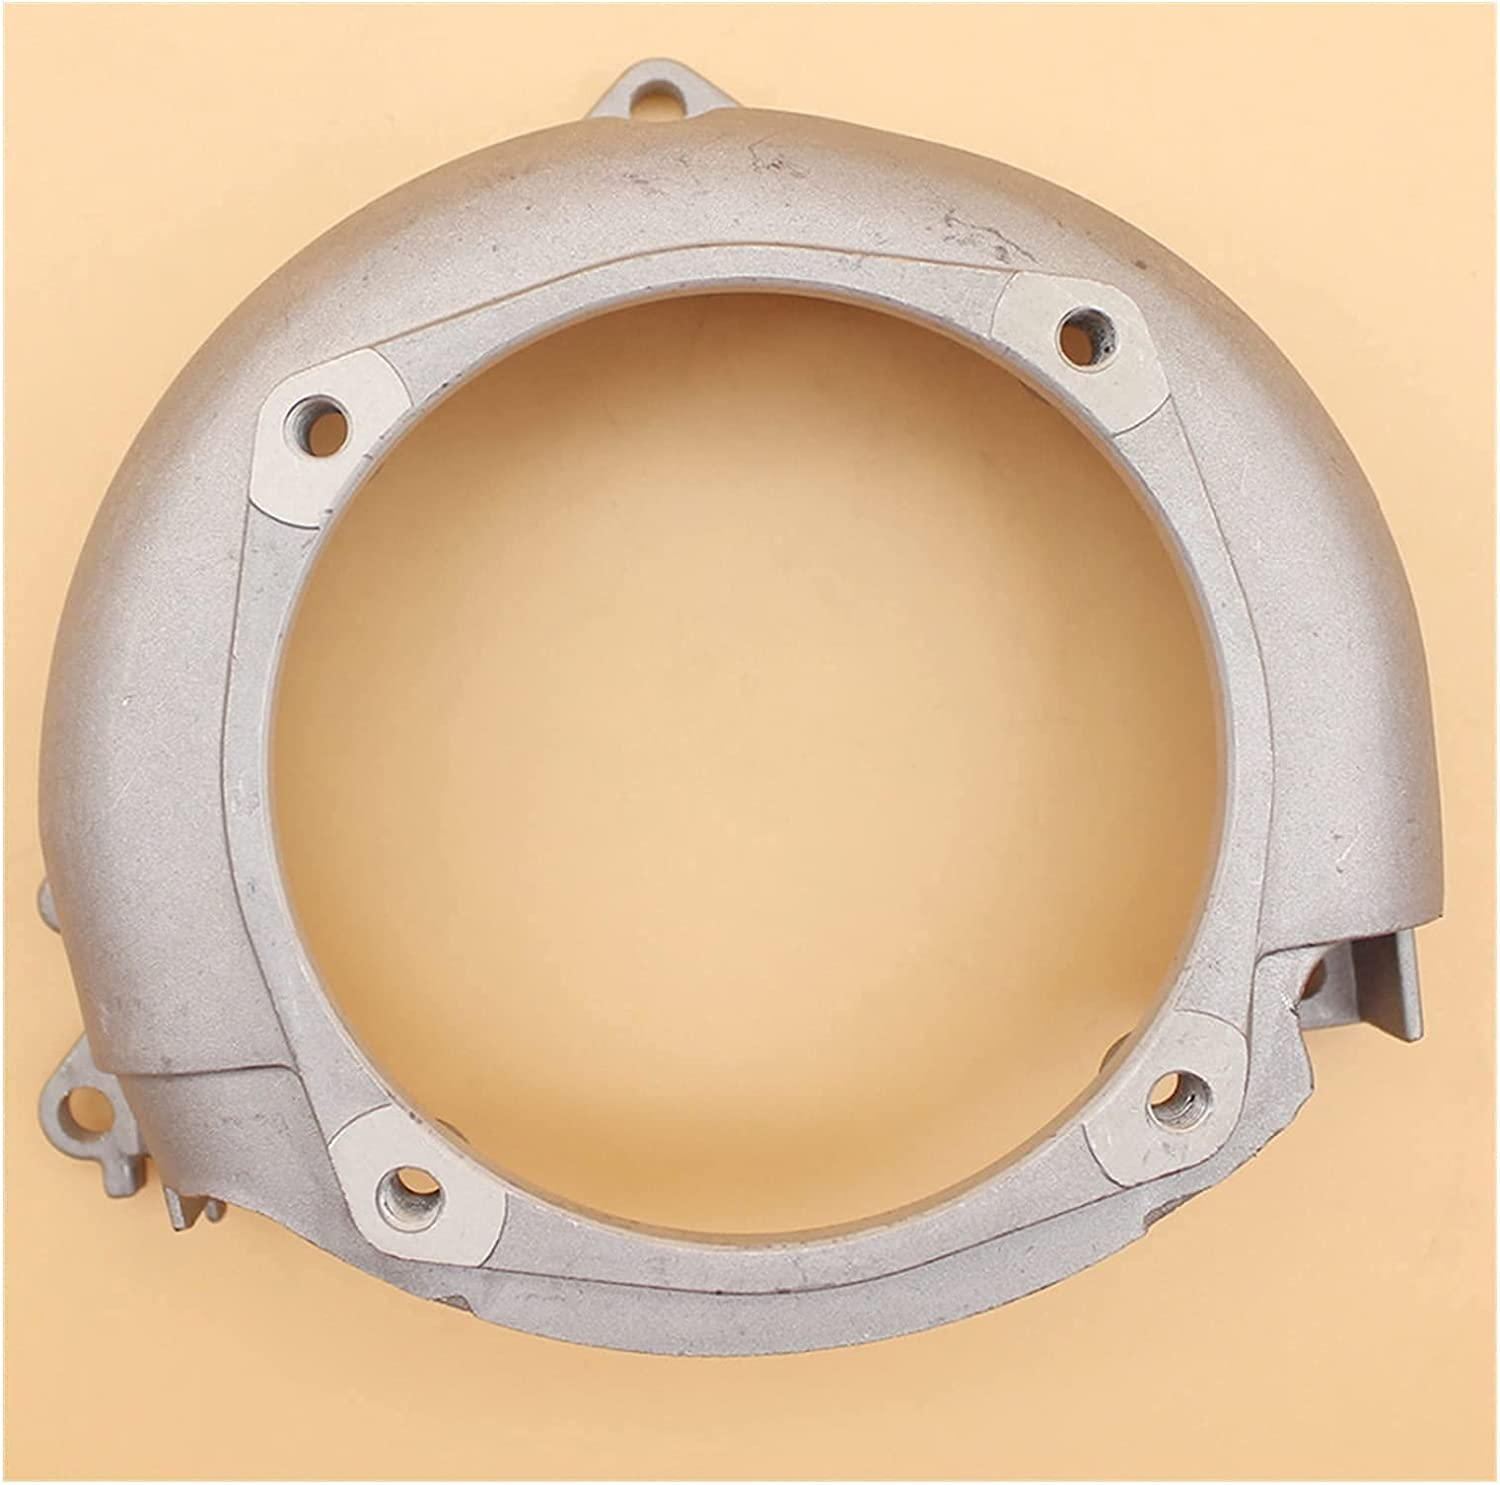 hndfhblshr Flywheel Fly We OFFer at cheap Max 82% OFF prices Wheel Cover G Fan H-ONDA with Compatible